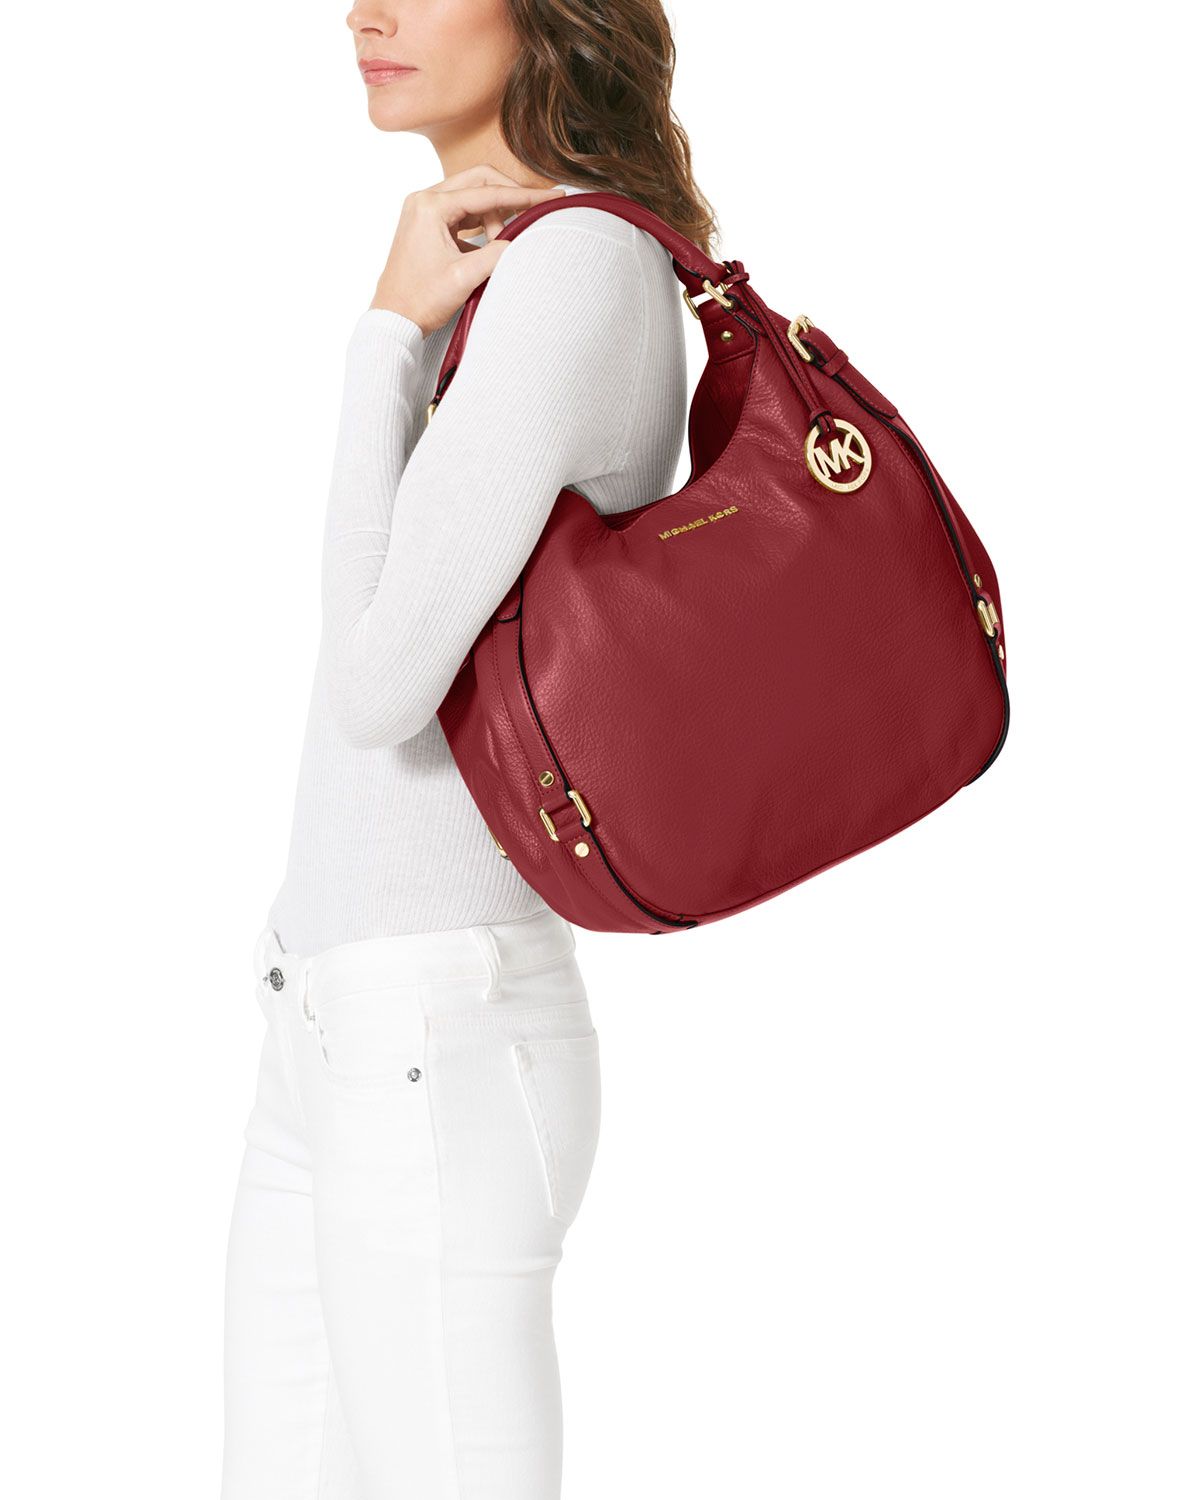 a3711387d085e0 Michael Kors Large Bedford Shoulder Tote in Red - Lyst